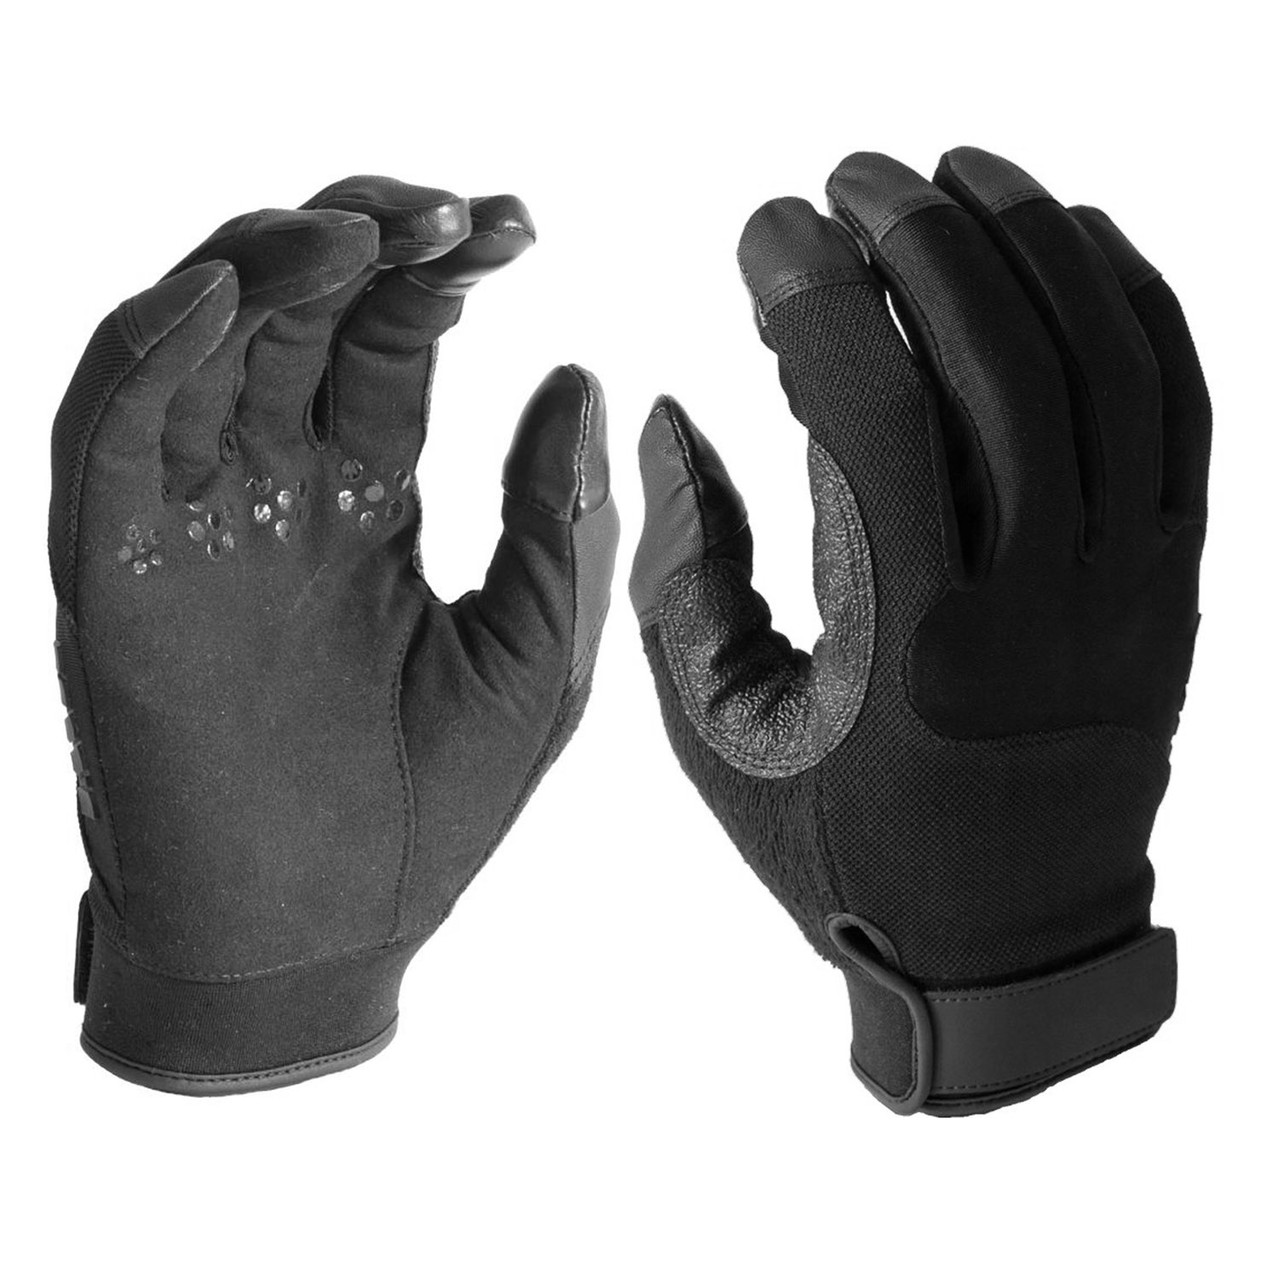 53258 CUT RESISTANT TOUCH SCREEN GLOVES